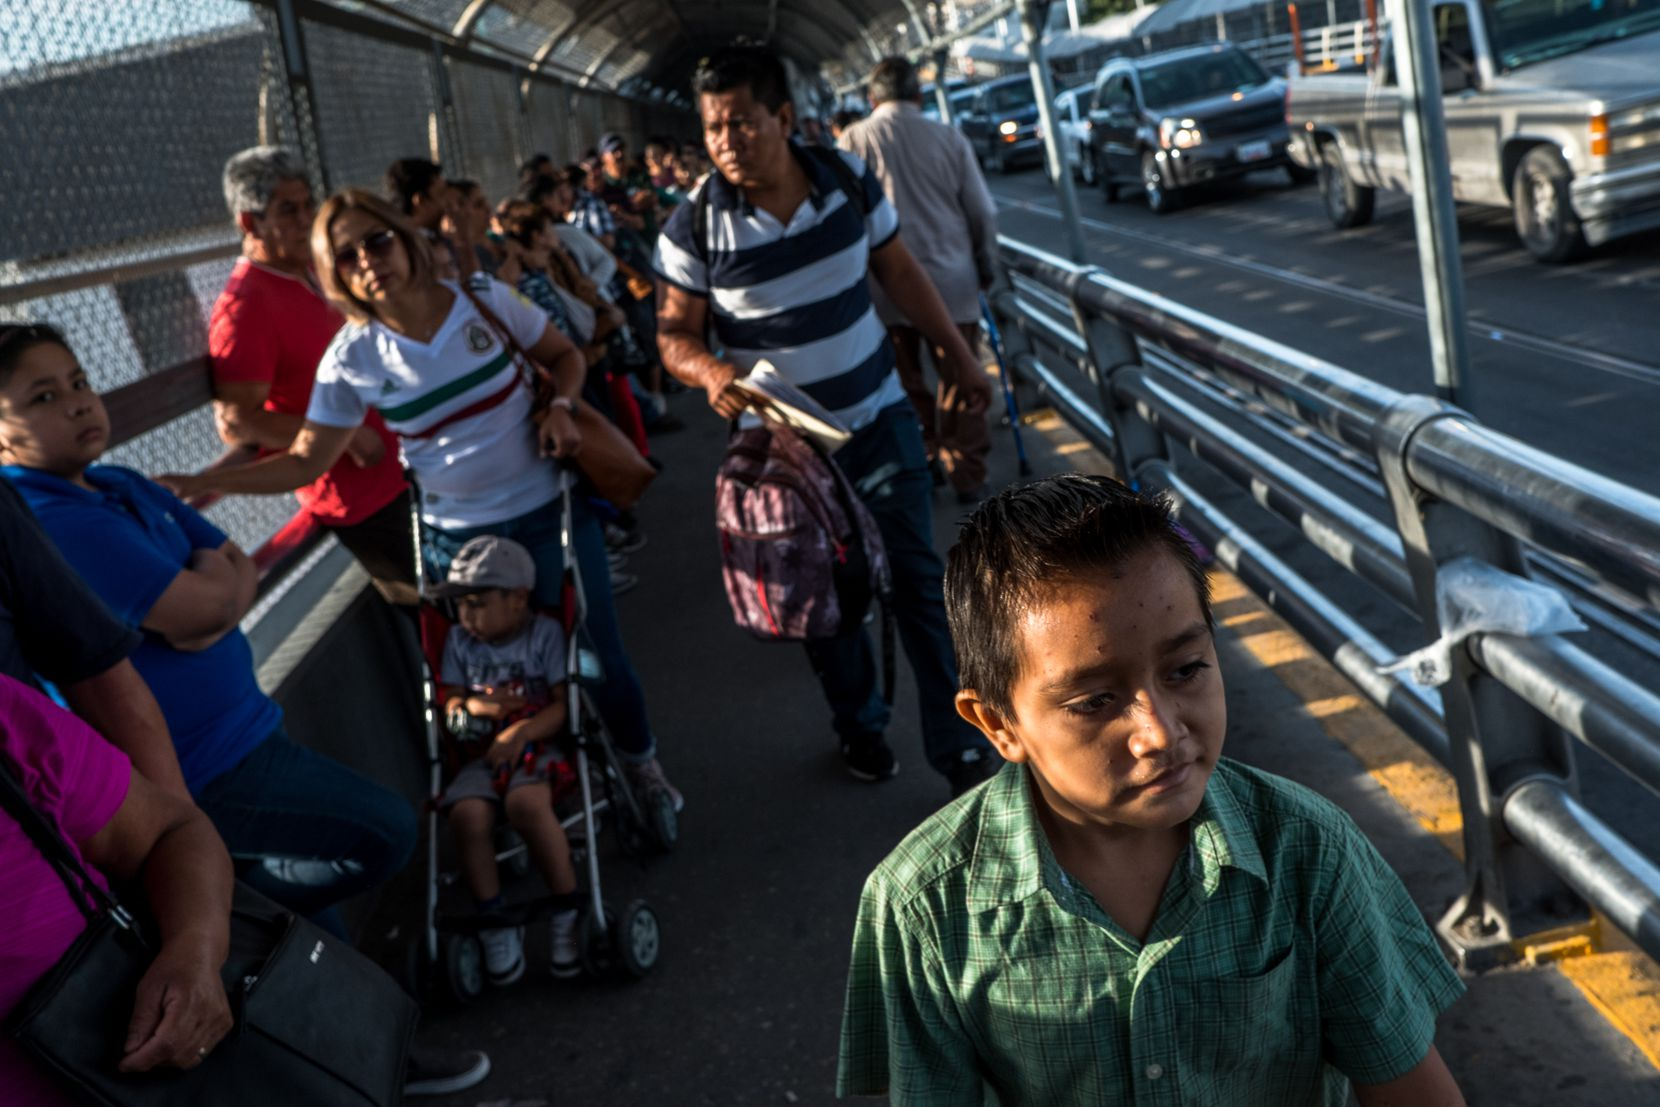 Cristopher Yovani Monjel, 7, is followed by his father, Edgar, 34, as they walk up the Paso del Norte Bridge toward a U.S. Port of Entry in Ciudad Juarez, Mexico, earlier this month. The Monjel family was attending their first immigration court date after being sent back to Mexico a month ago for the duration of their asylum case as part of the Migrant Protection Protocol program.